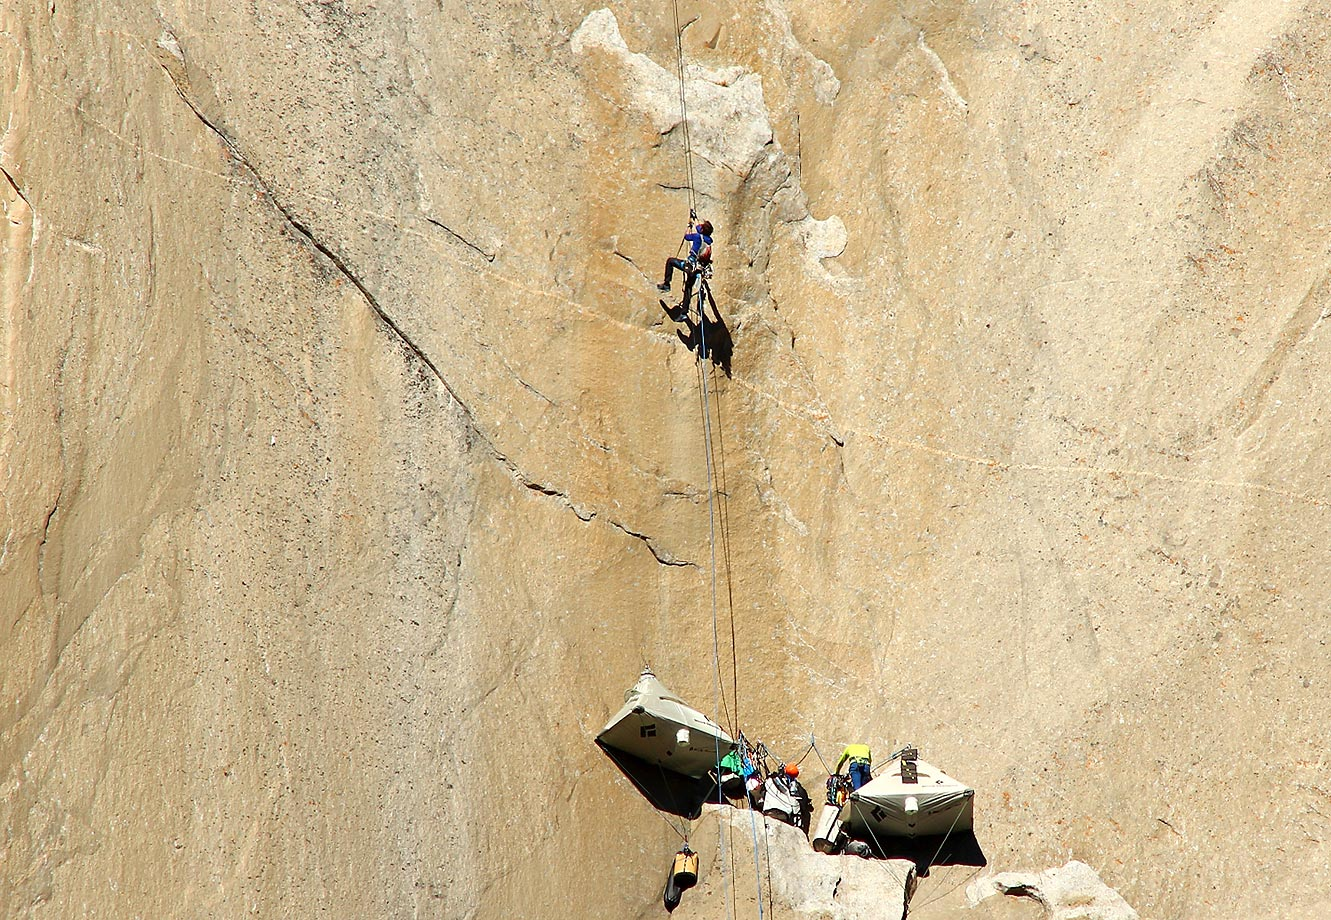 Kevin Jorgeson (in blue) ascending the rope from base camp to his next climb, while Tommy Caldwell sorts gear at camp (in yellow.)